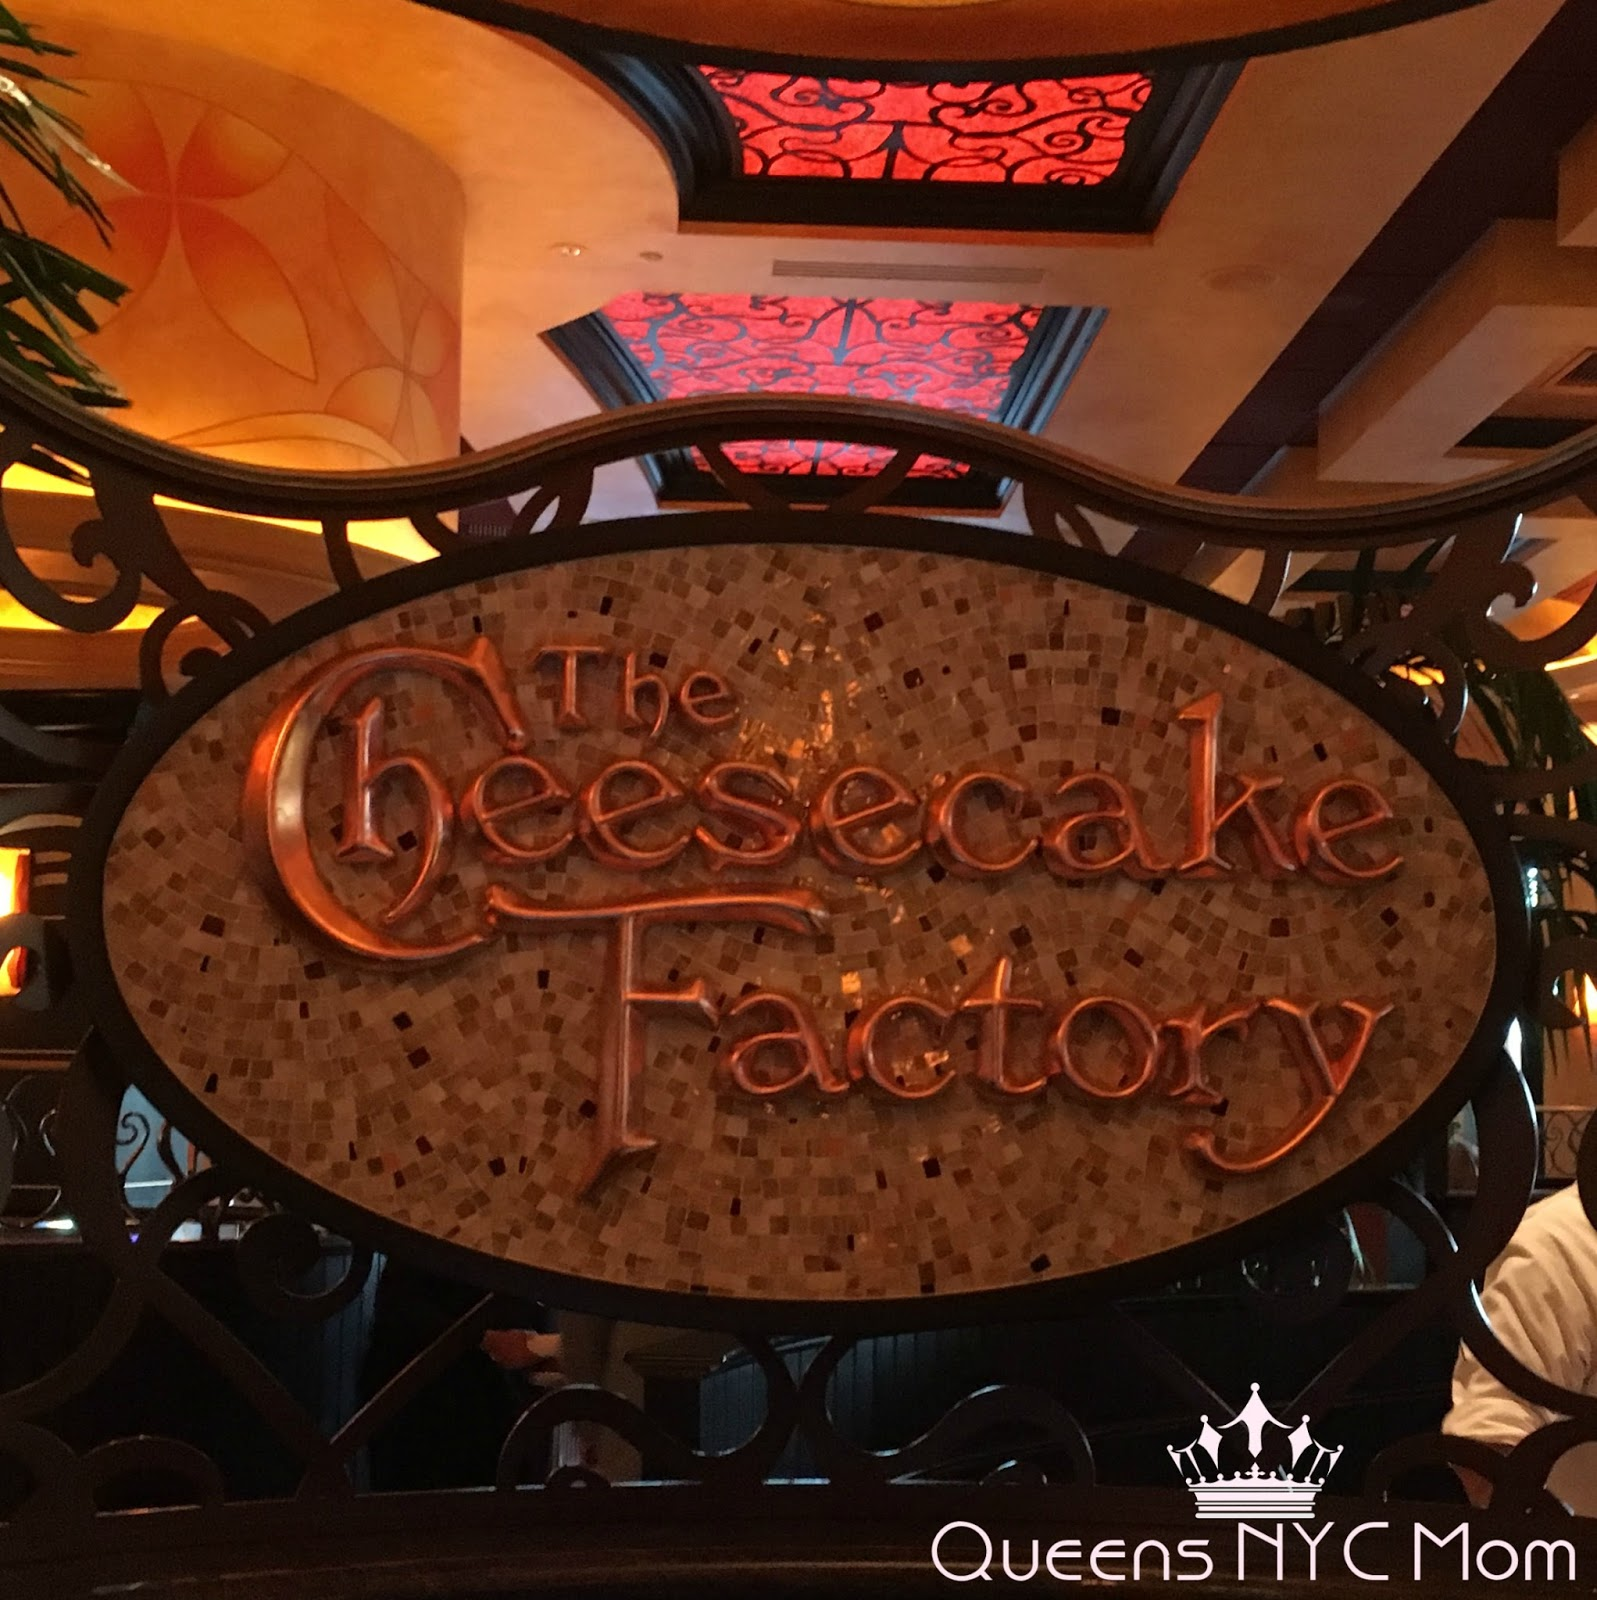 Kitchen Design Queens Ny Review The Cheesecake Factory Restaurant Queens Center